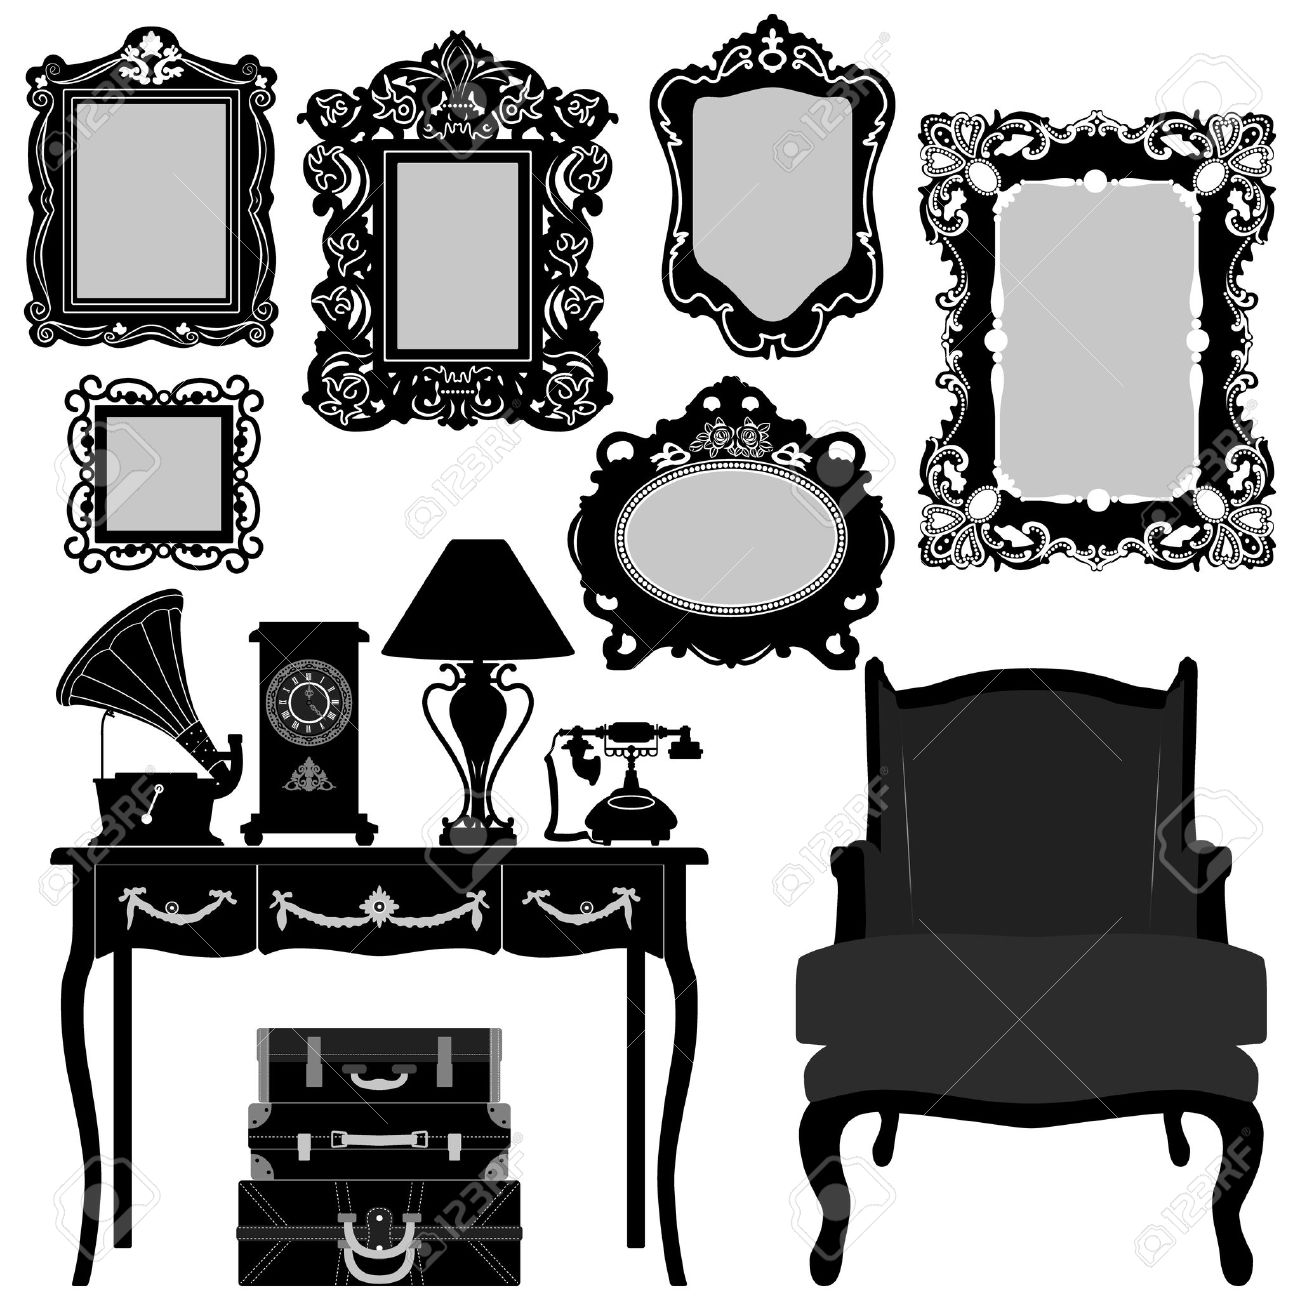 Antique Picture Frame Ornate Vintage Retro Museum Object Furniture Stock Vector